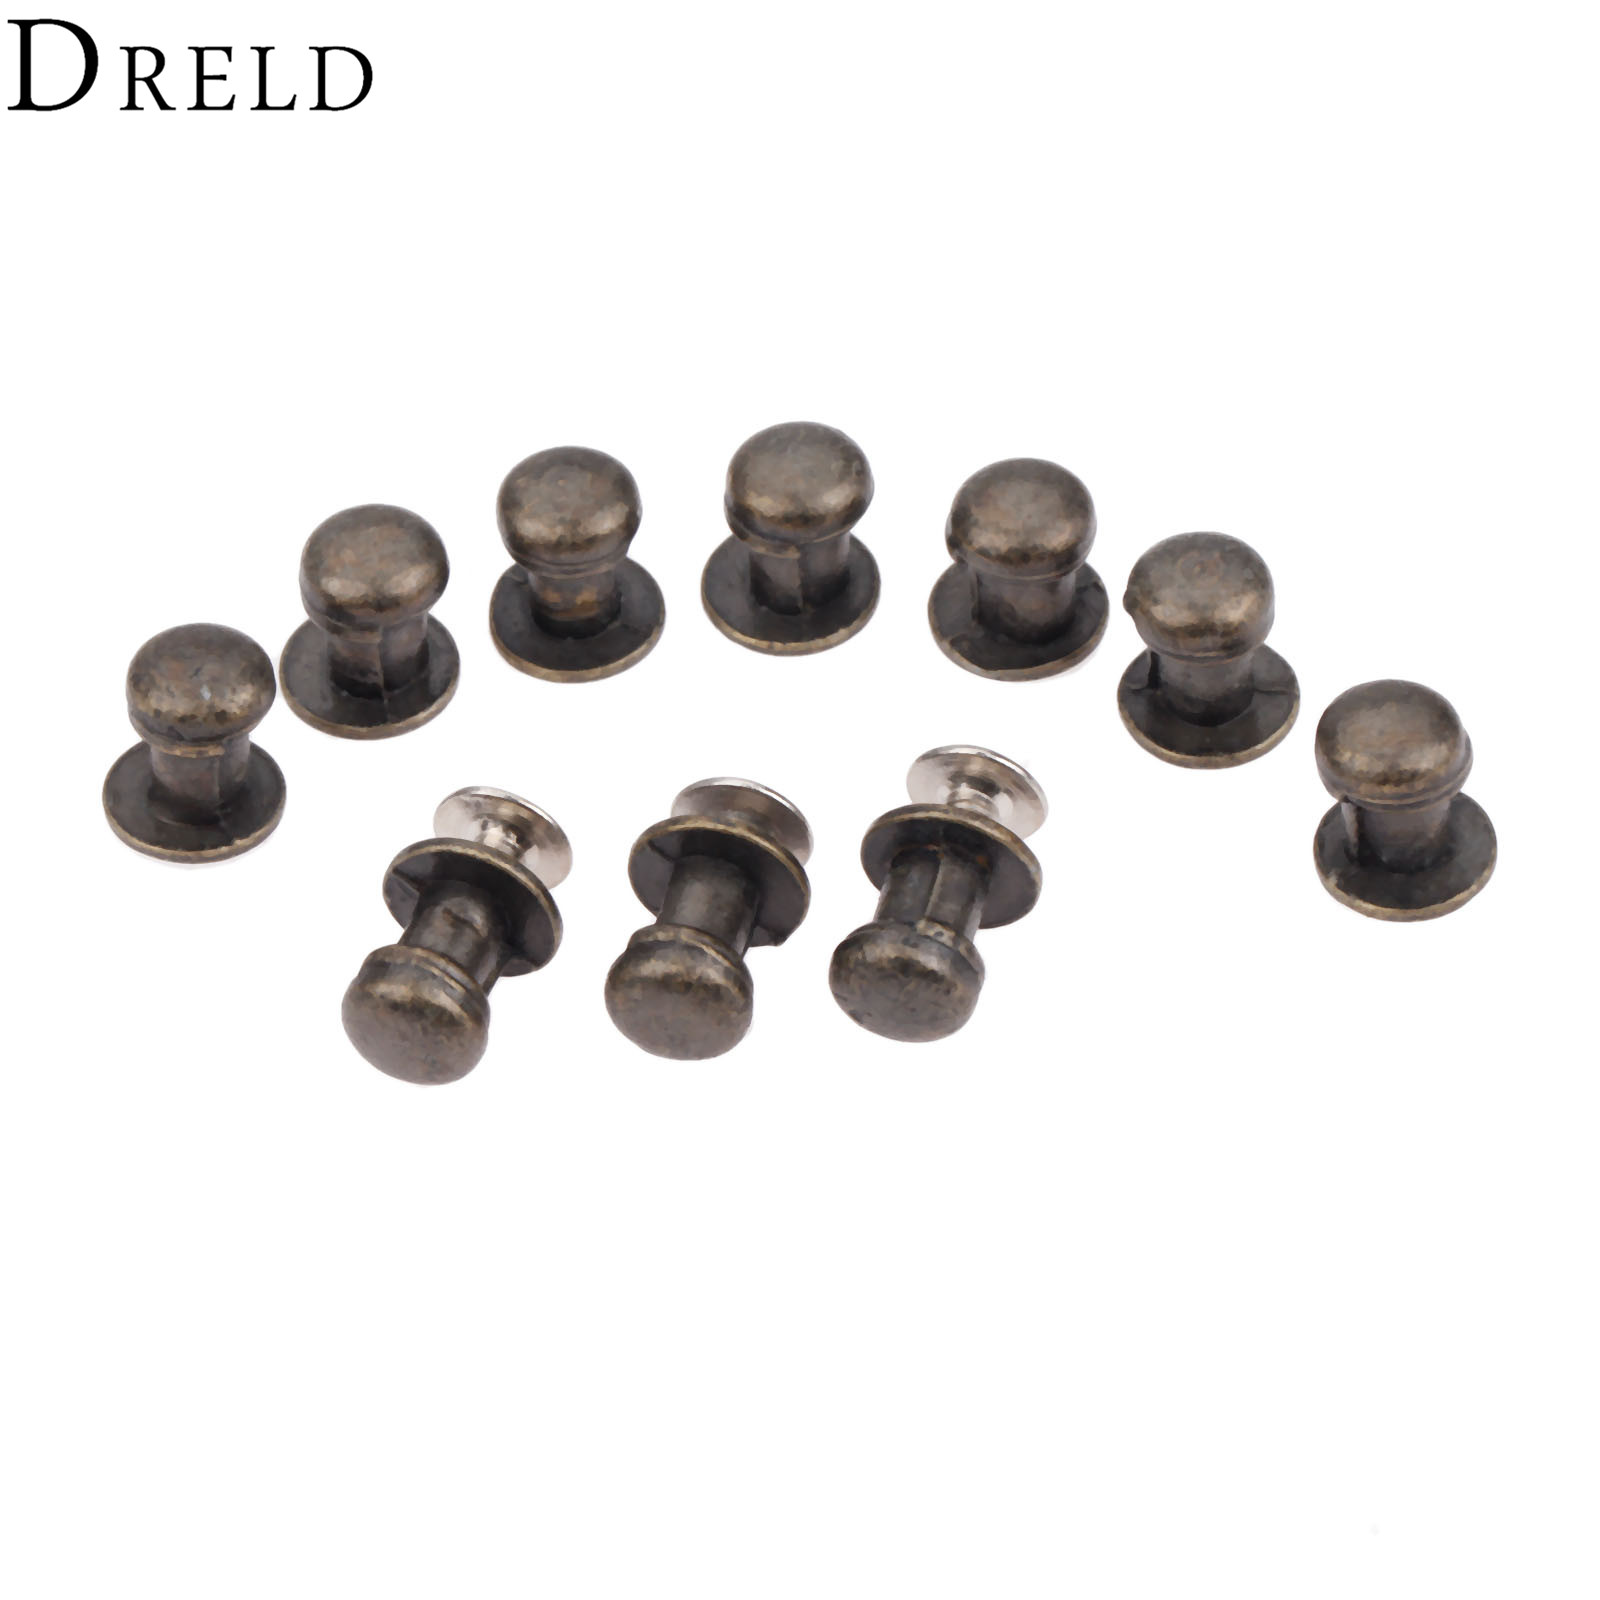 DRELD 10Pcs 7*10mm Furniture Handles Jewelry Wooden Box Small Handles Drawer Cabinet Handles Pulls Knob Hardware Accessories спот marksojd